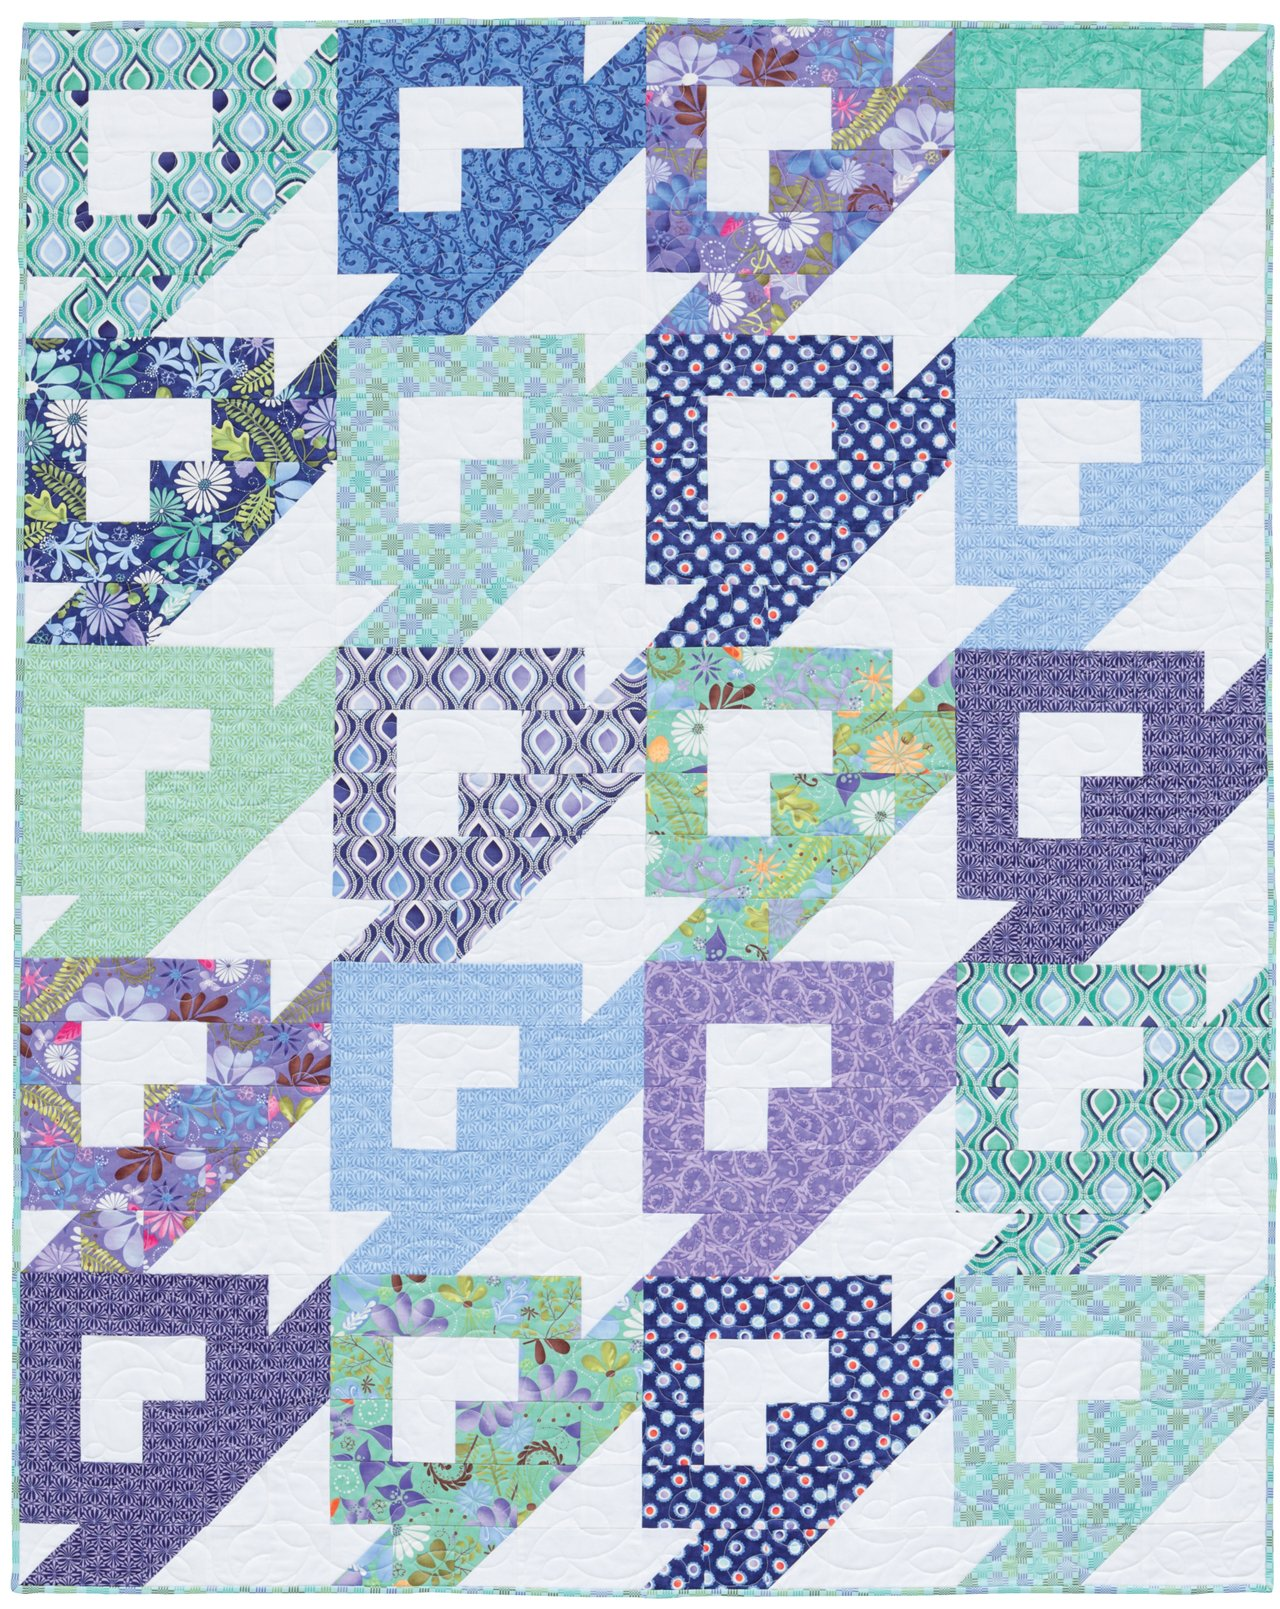 Baby Block Quilt Patterns New Design Inspiration